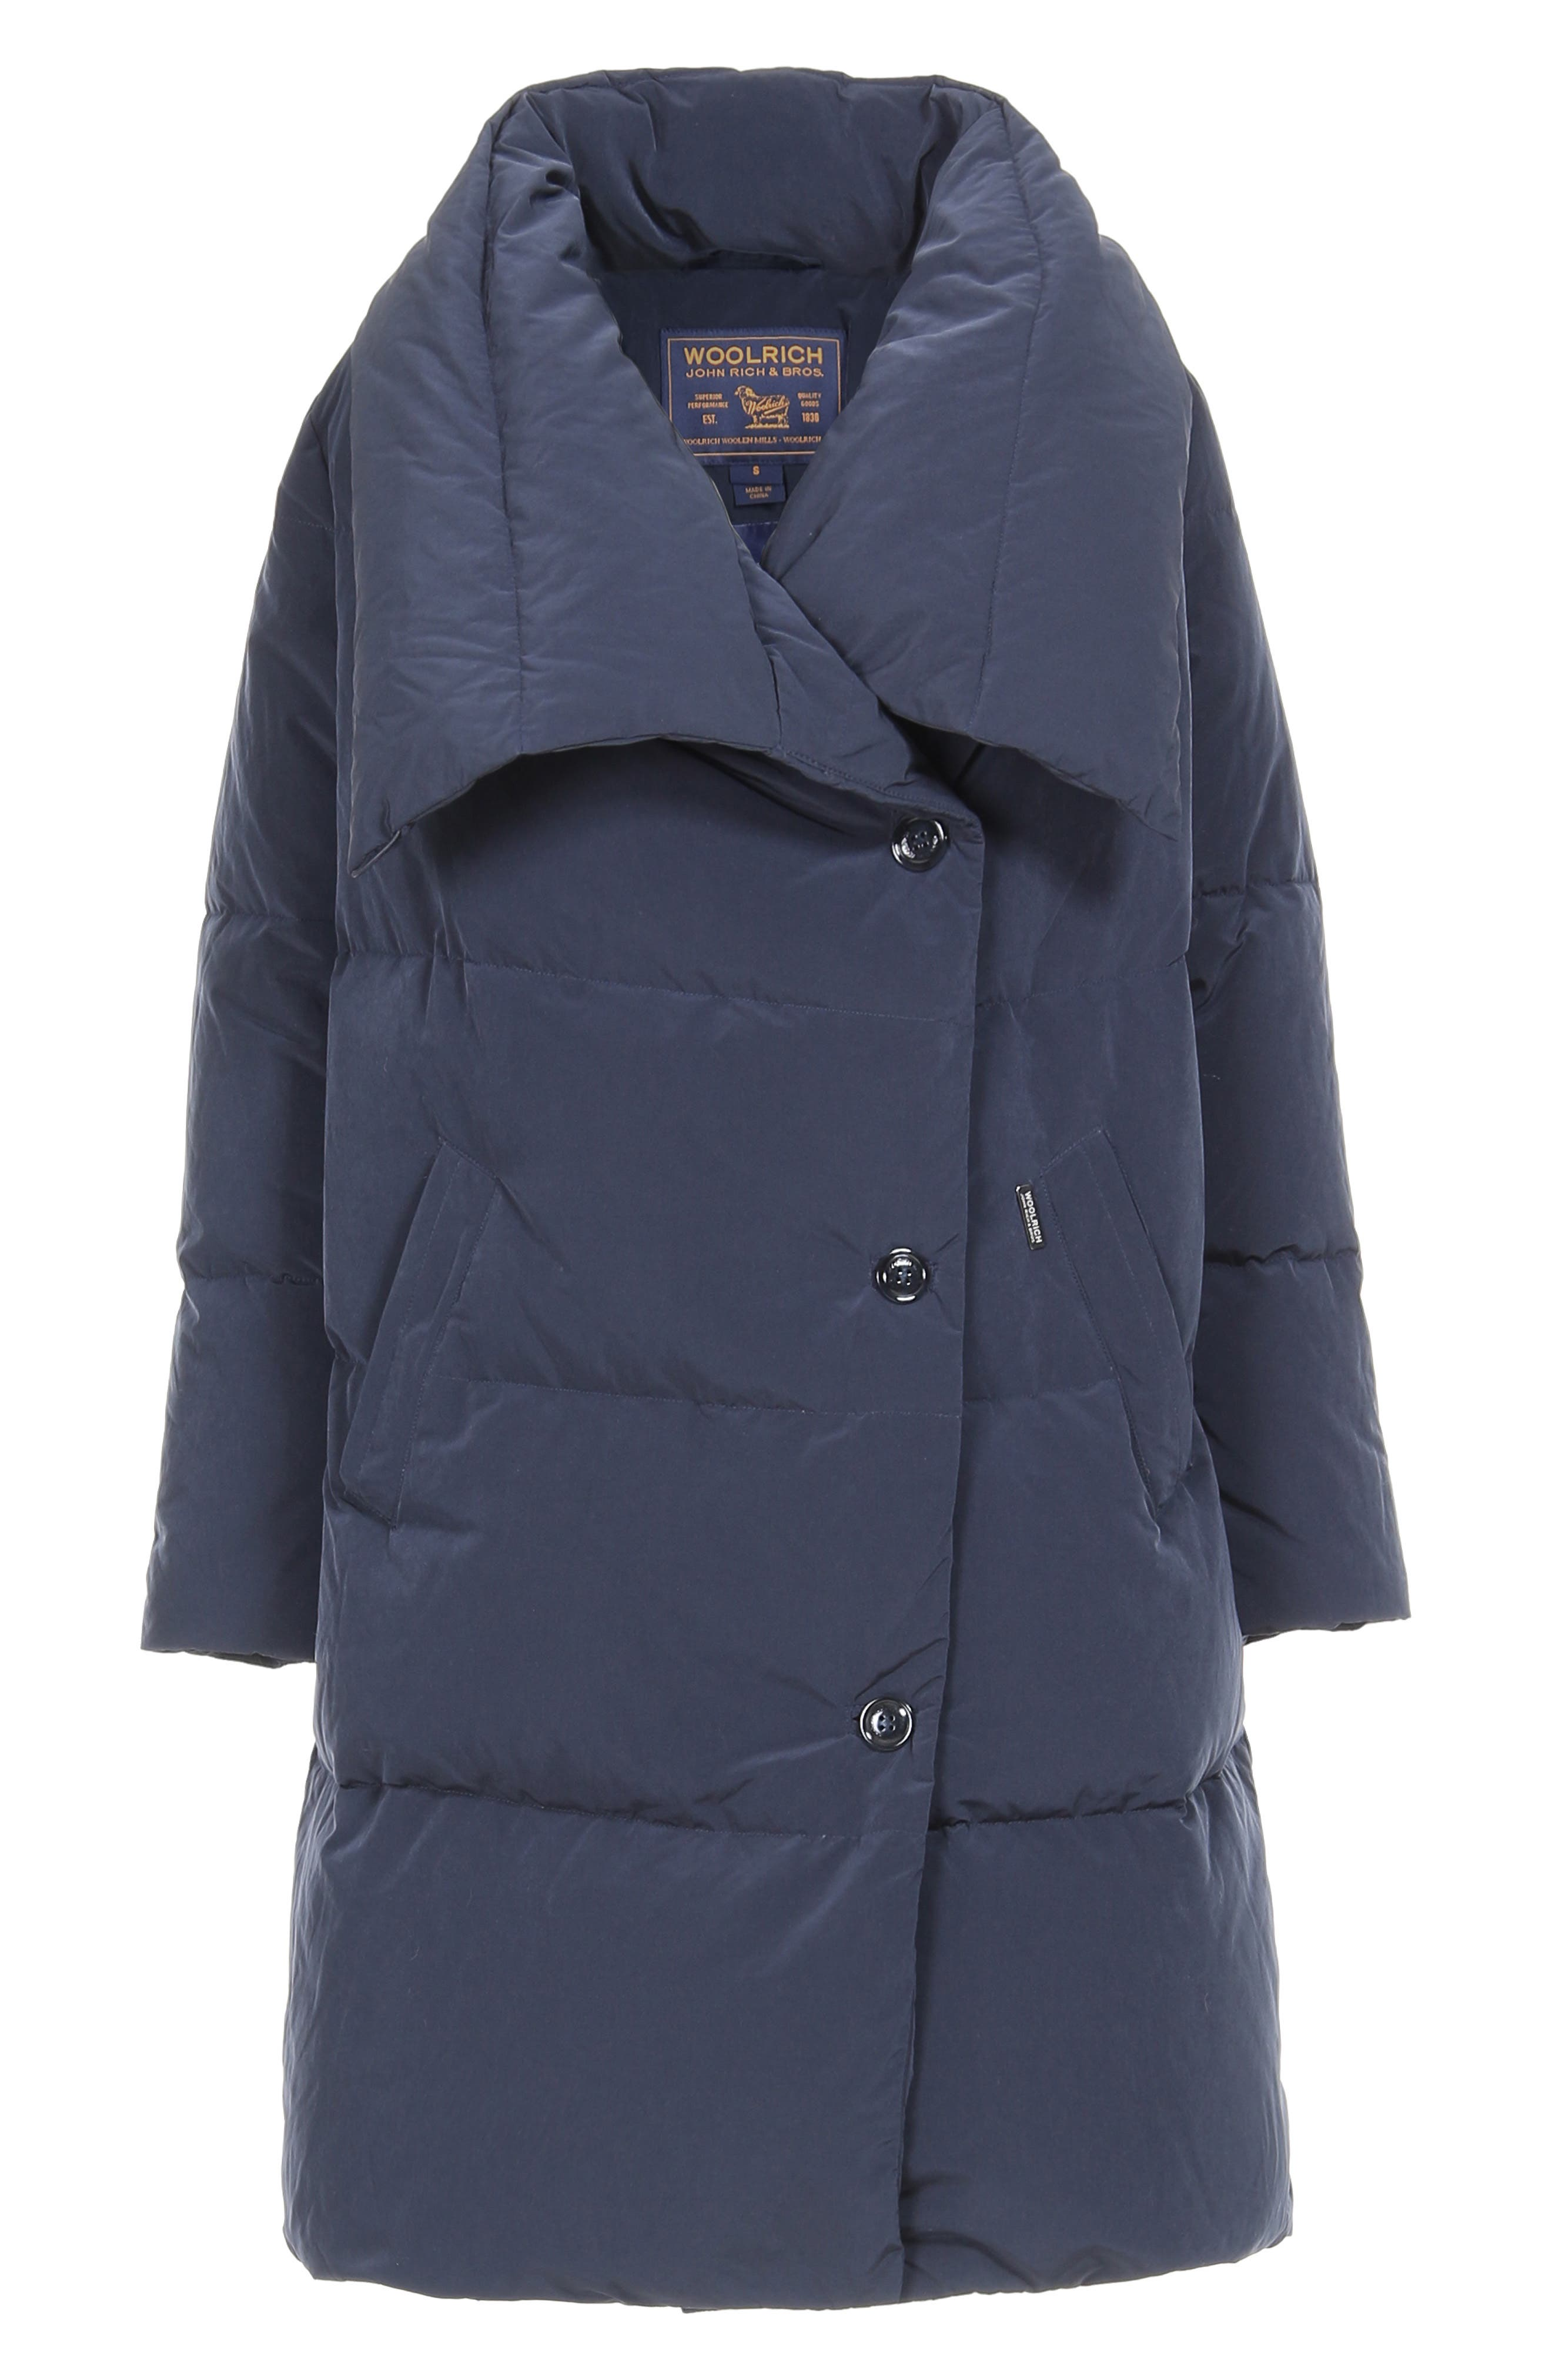 WOOLRICH,                             Puffy Down Coat,                             Alternate thumbnail 6, color,                             400